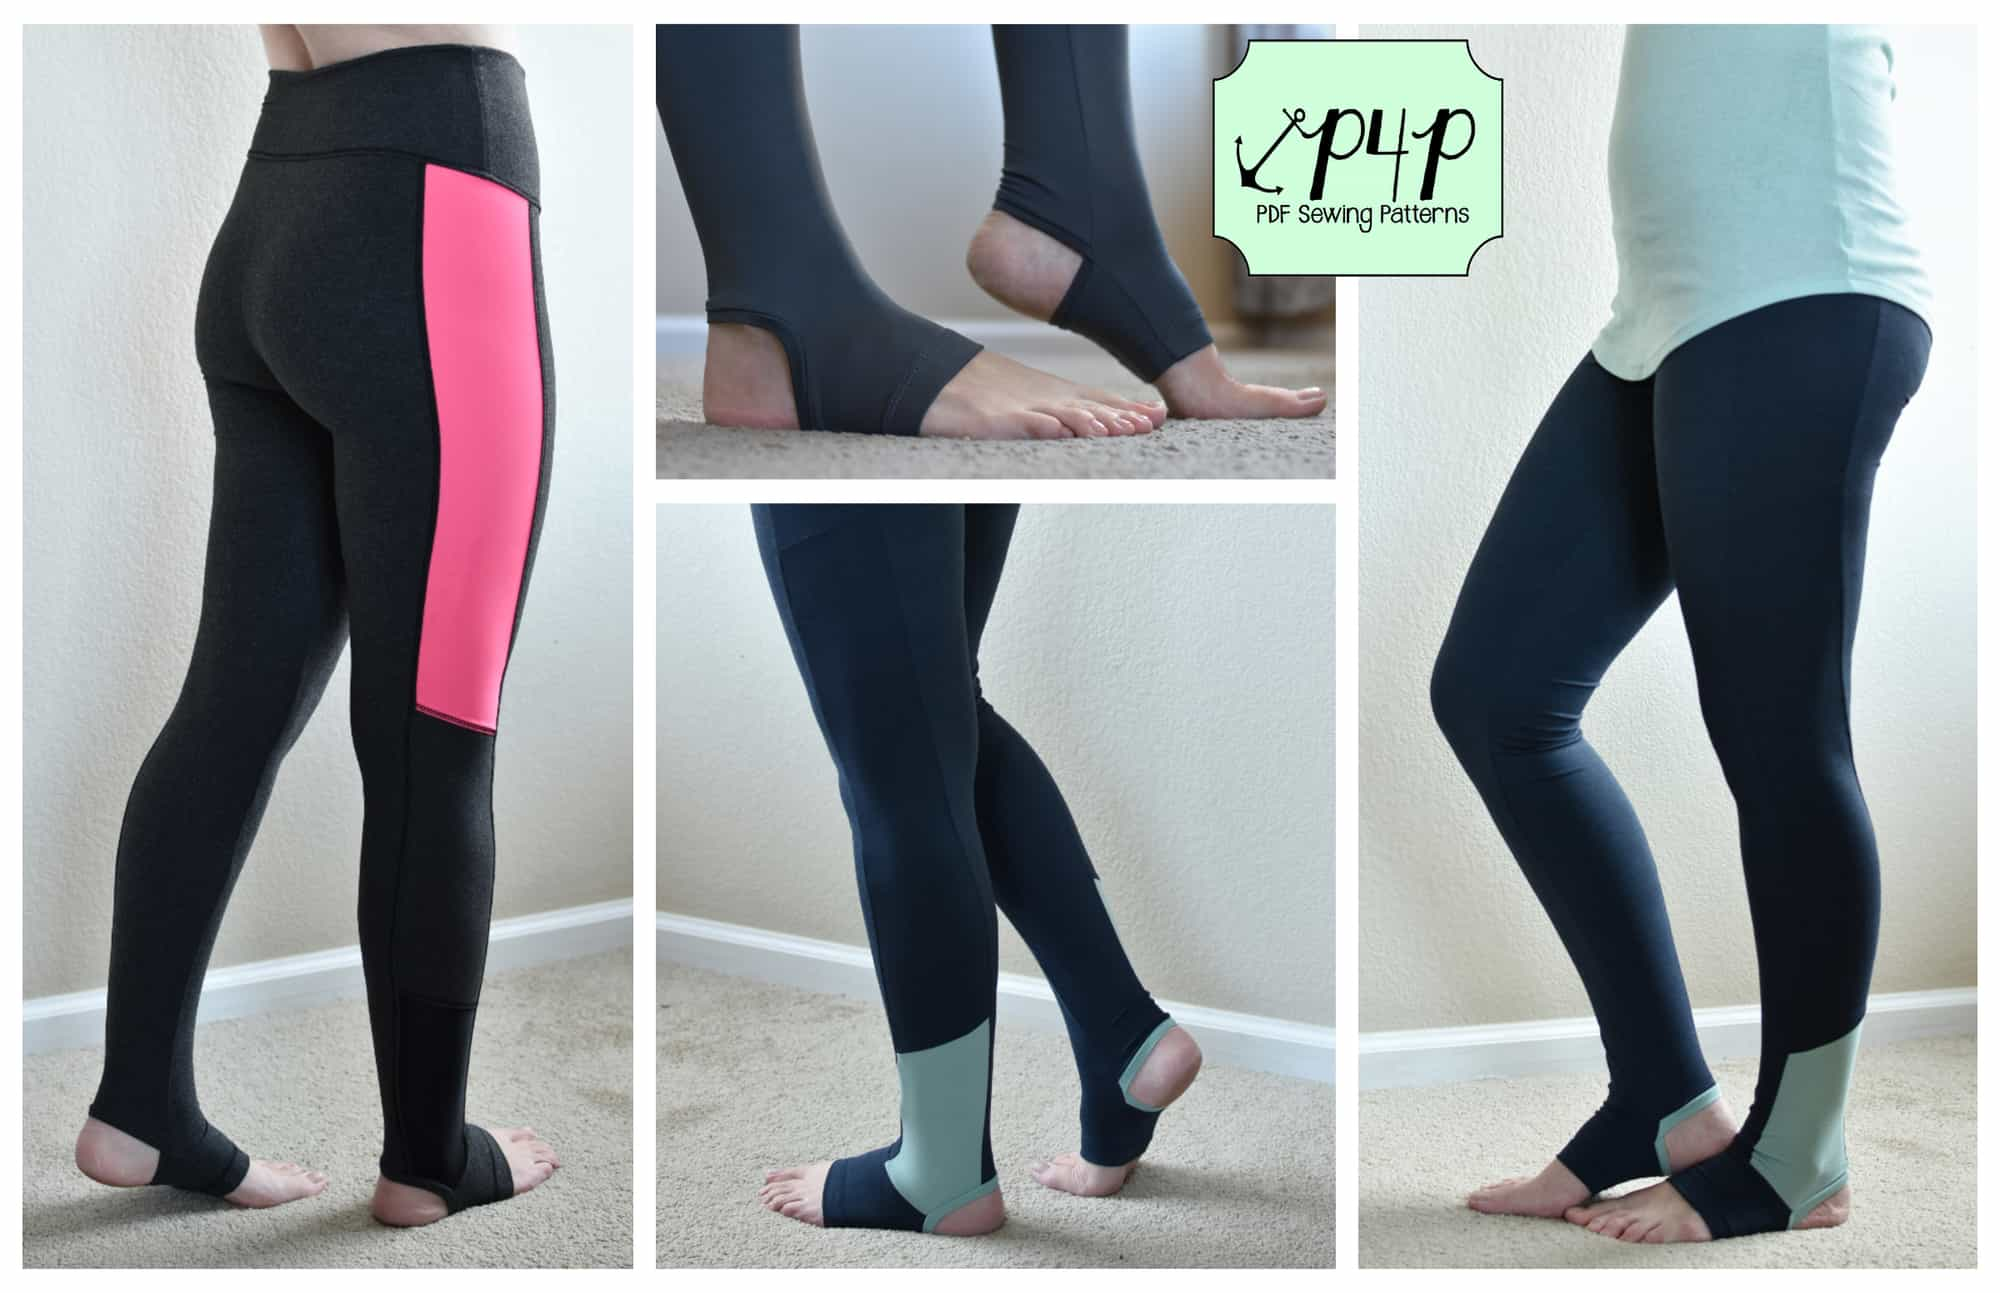 Athletic leggings archives patterns for pirates we are celebrating reaching 50k fans in our facebook group to make it a party our beloved peglegs pattern just got an update and some new add ons jeuxipadfo Image collections